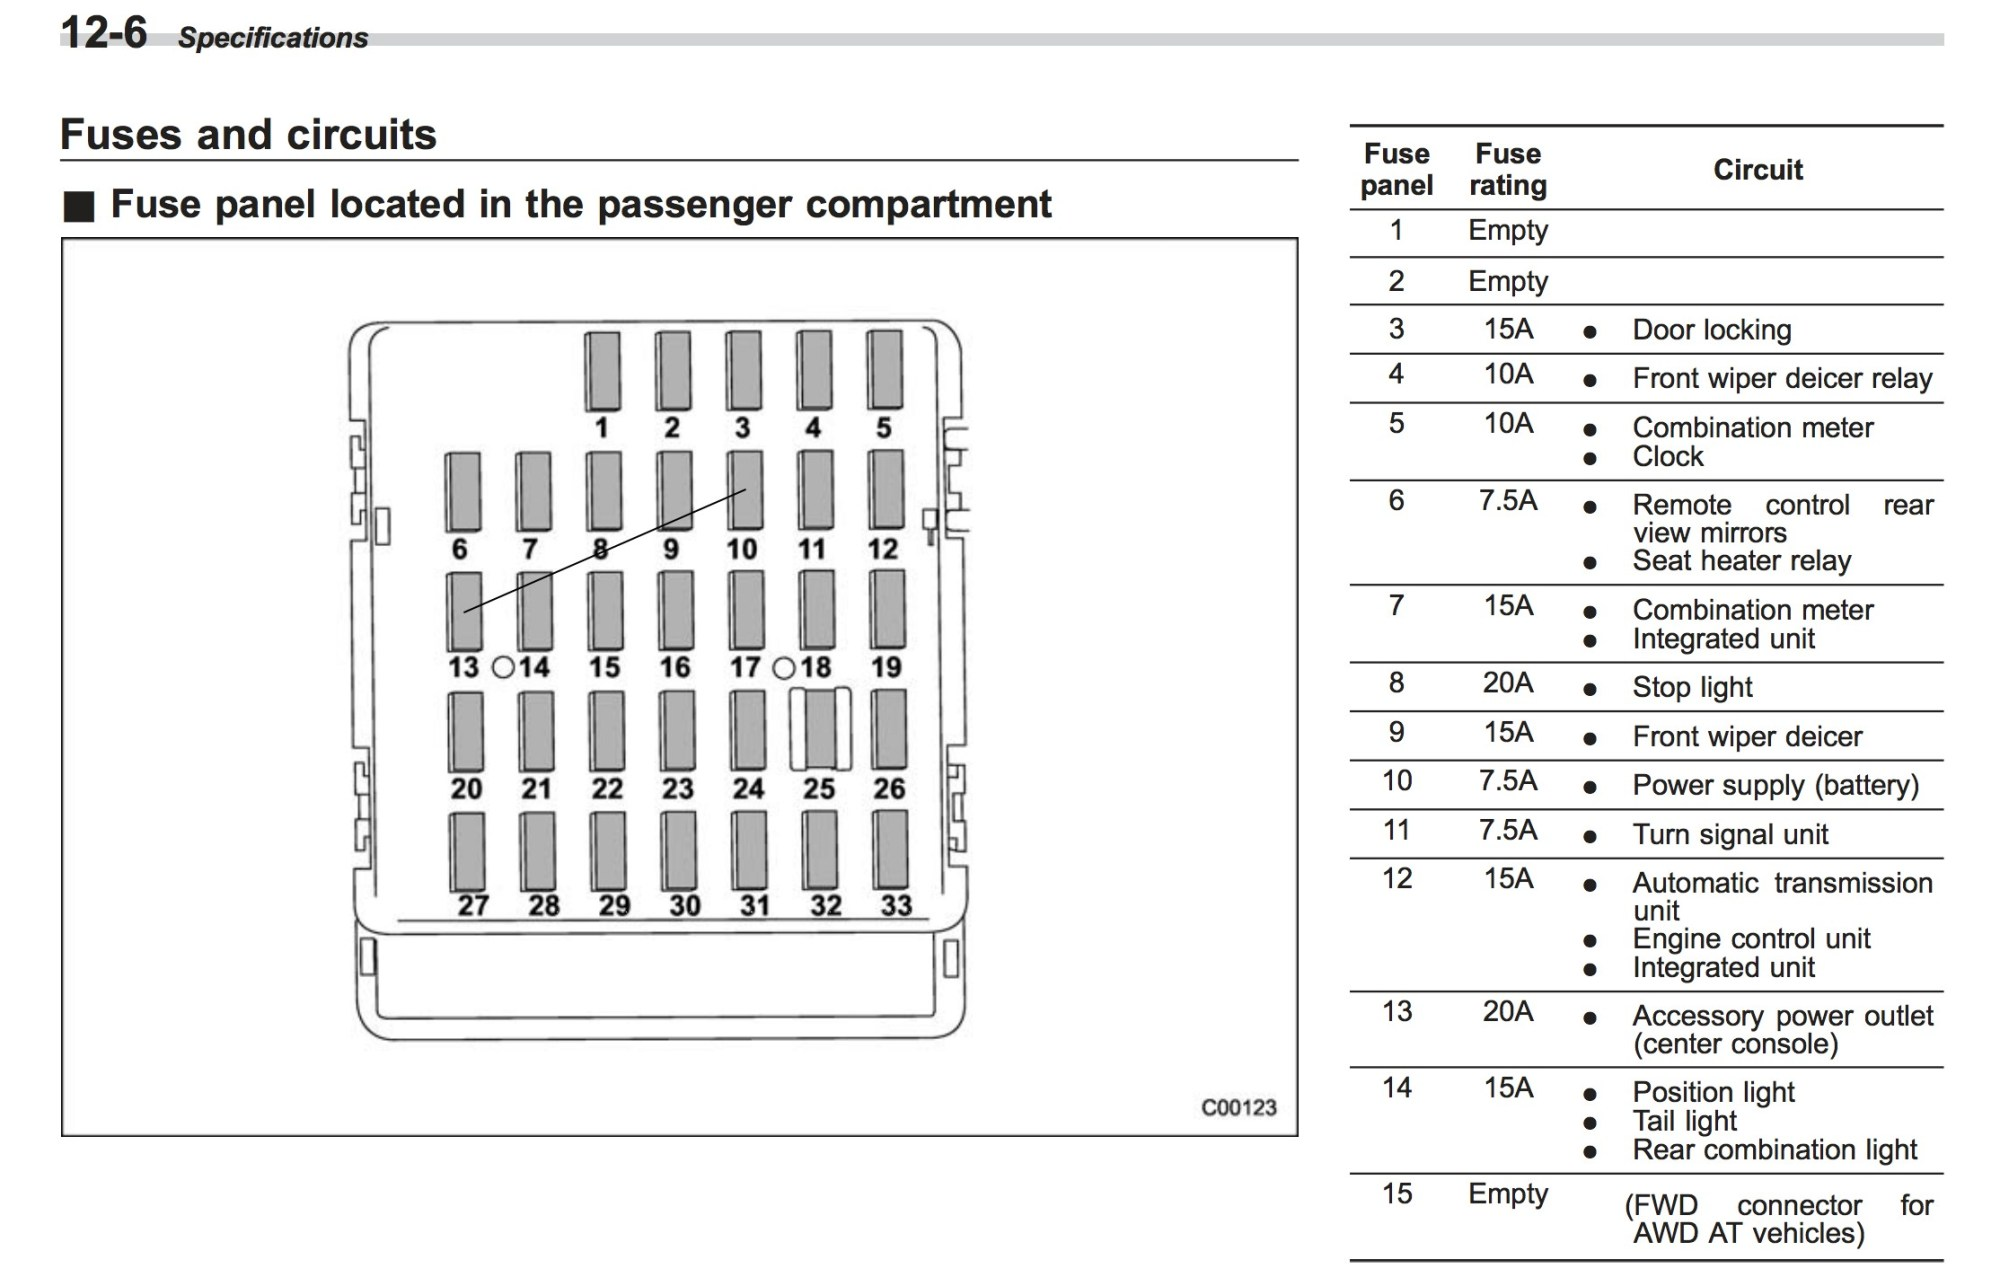 hight resolution of subaru impreza fuse box diagram wiring diagram article 2014 subaru impreza fuse diagram